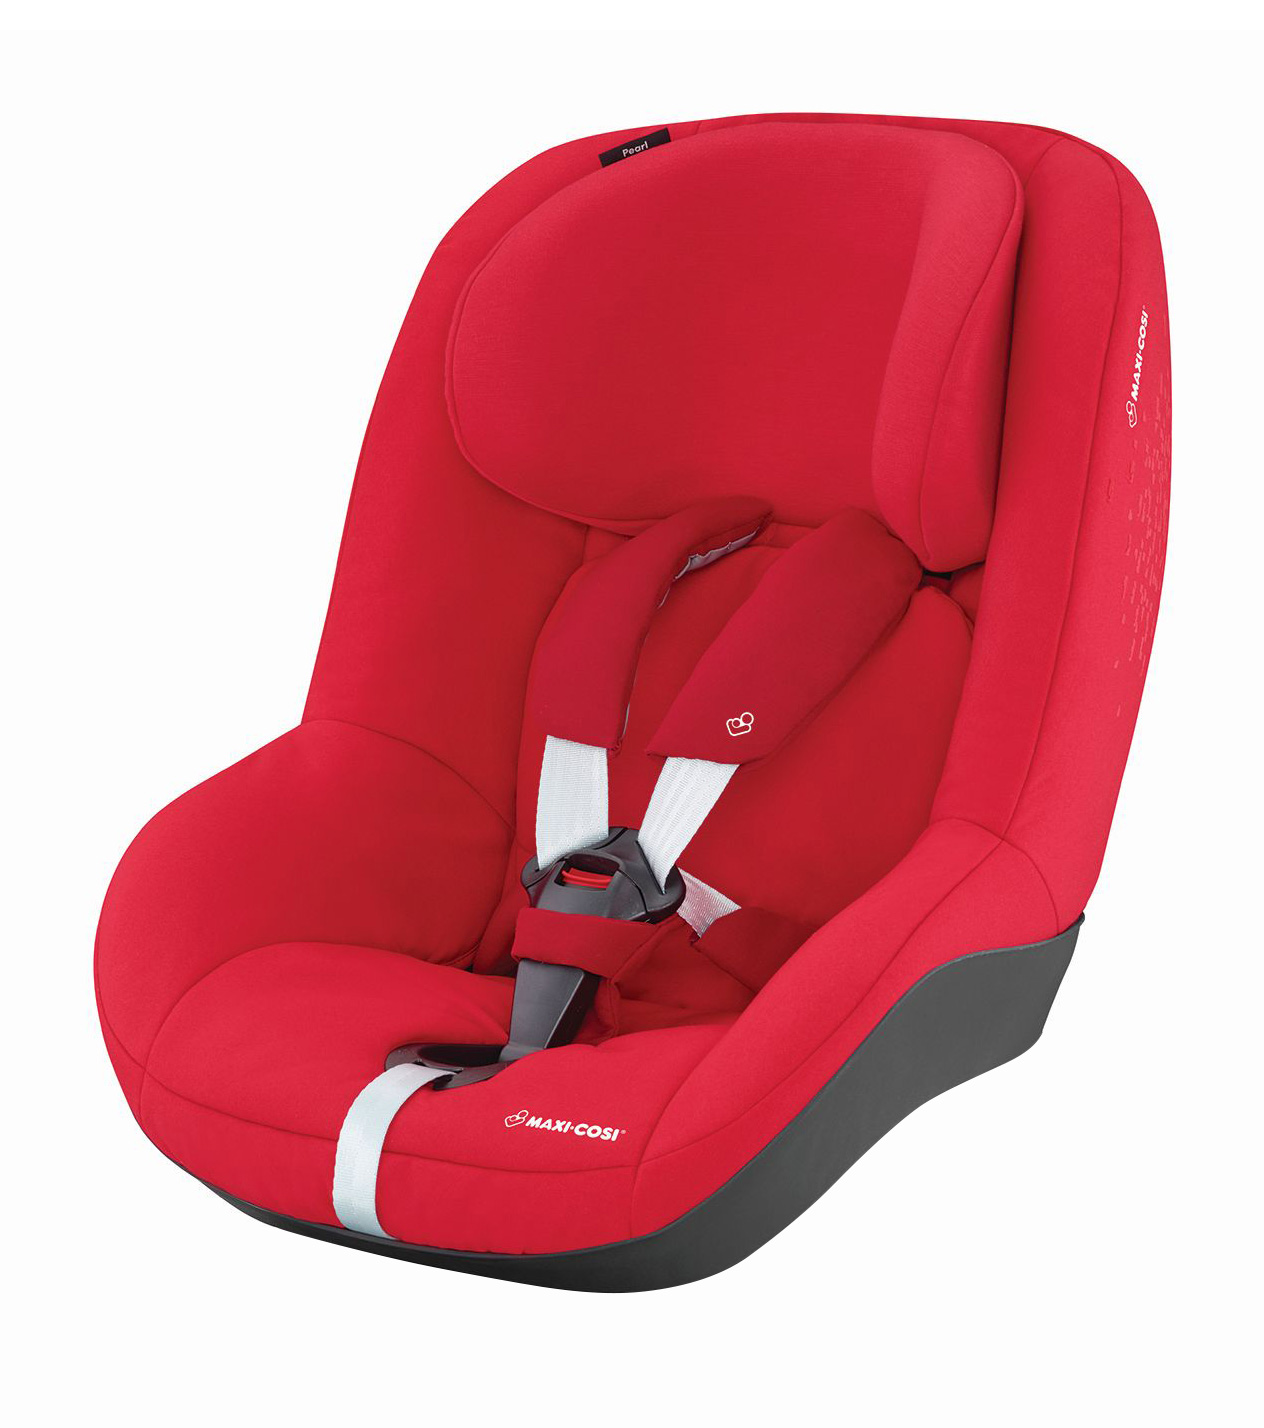 Maxi cosi child car seat pearl 2018 vivid red buy at for Maxi cosi housse